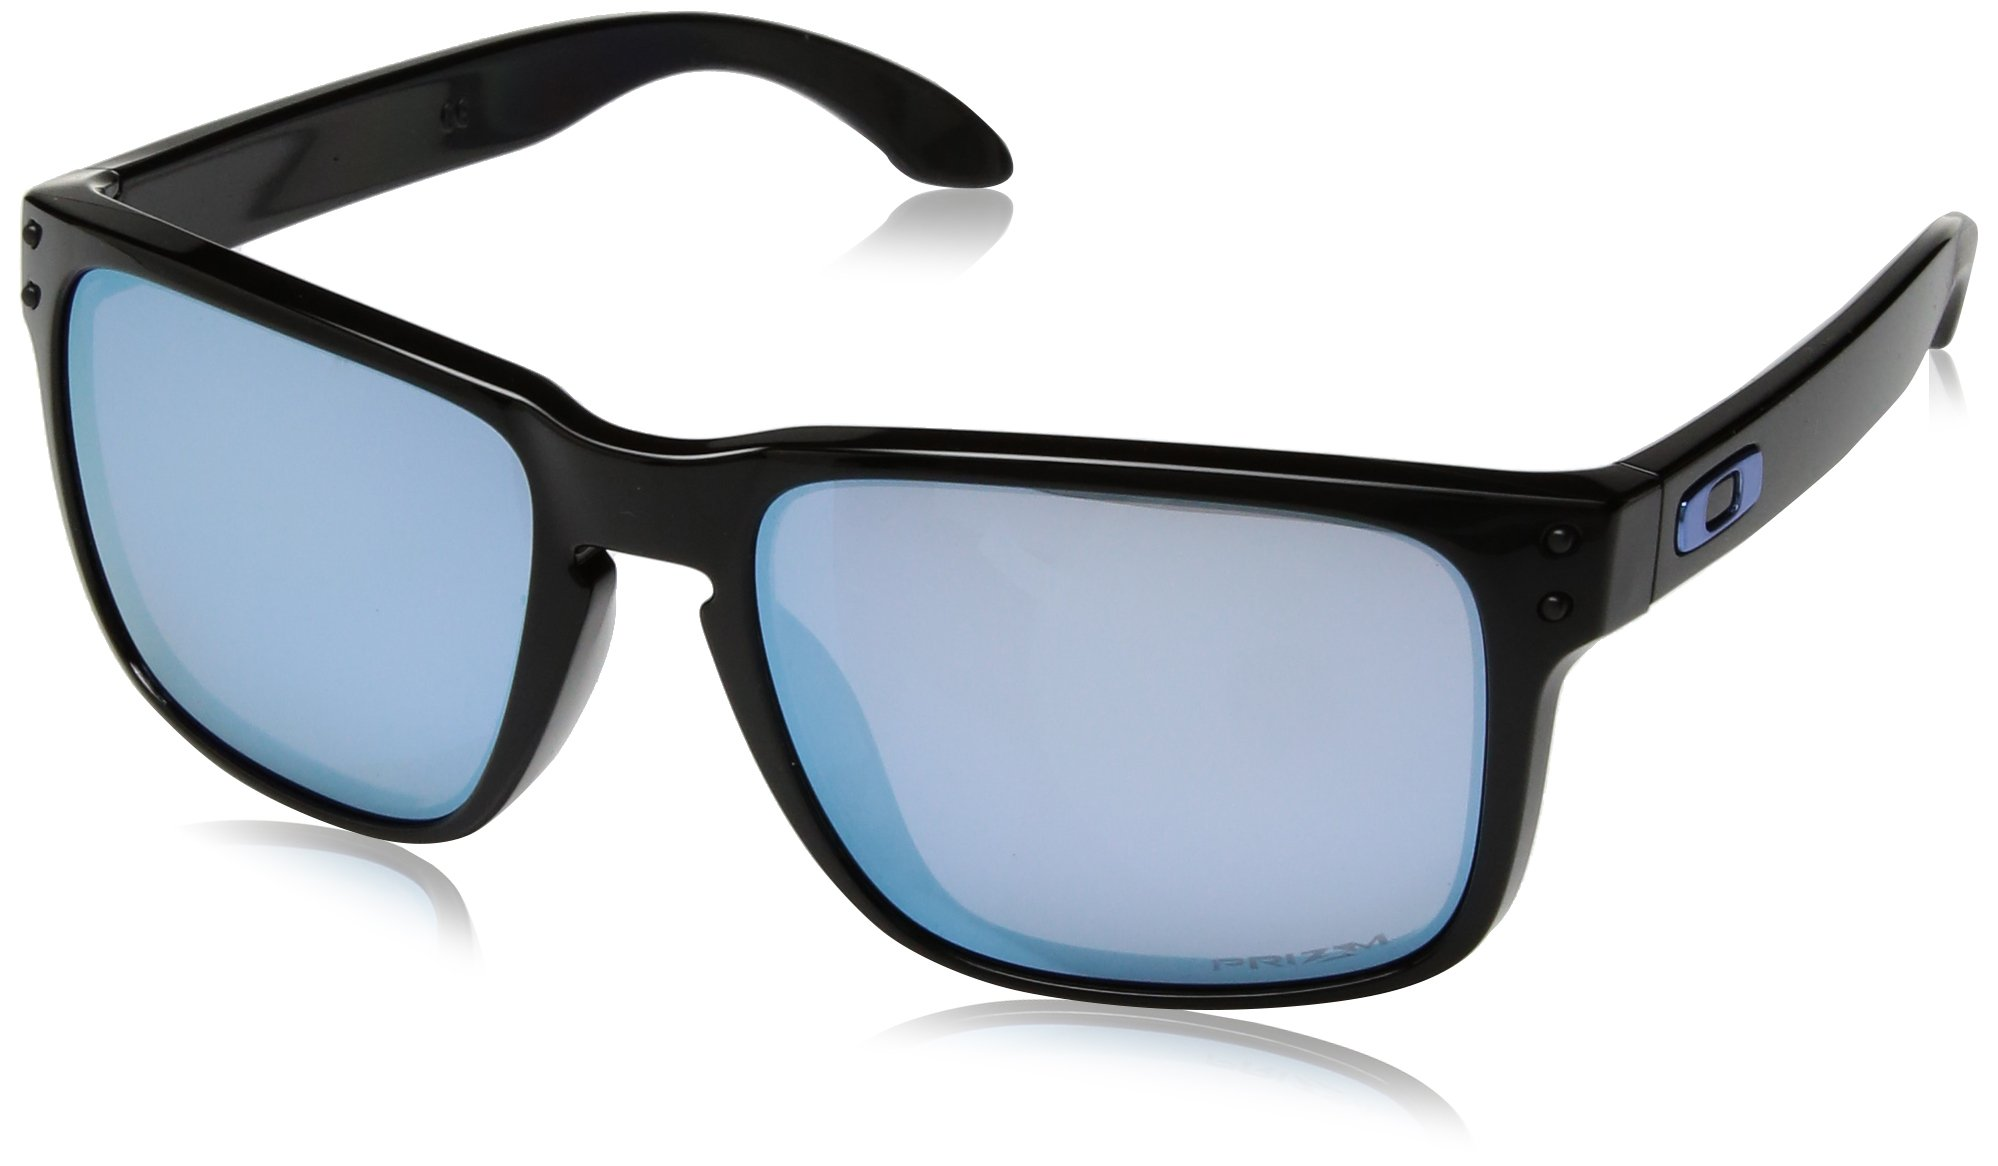 c29243a40789e Oakley Sunglasses Prizm  Amazon.com